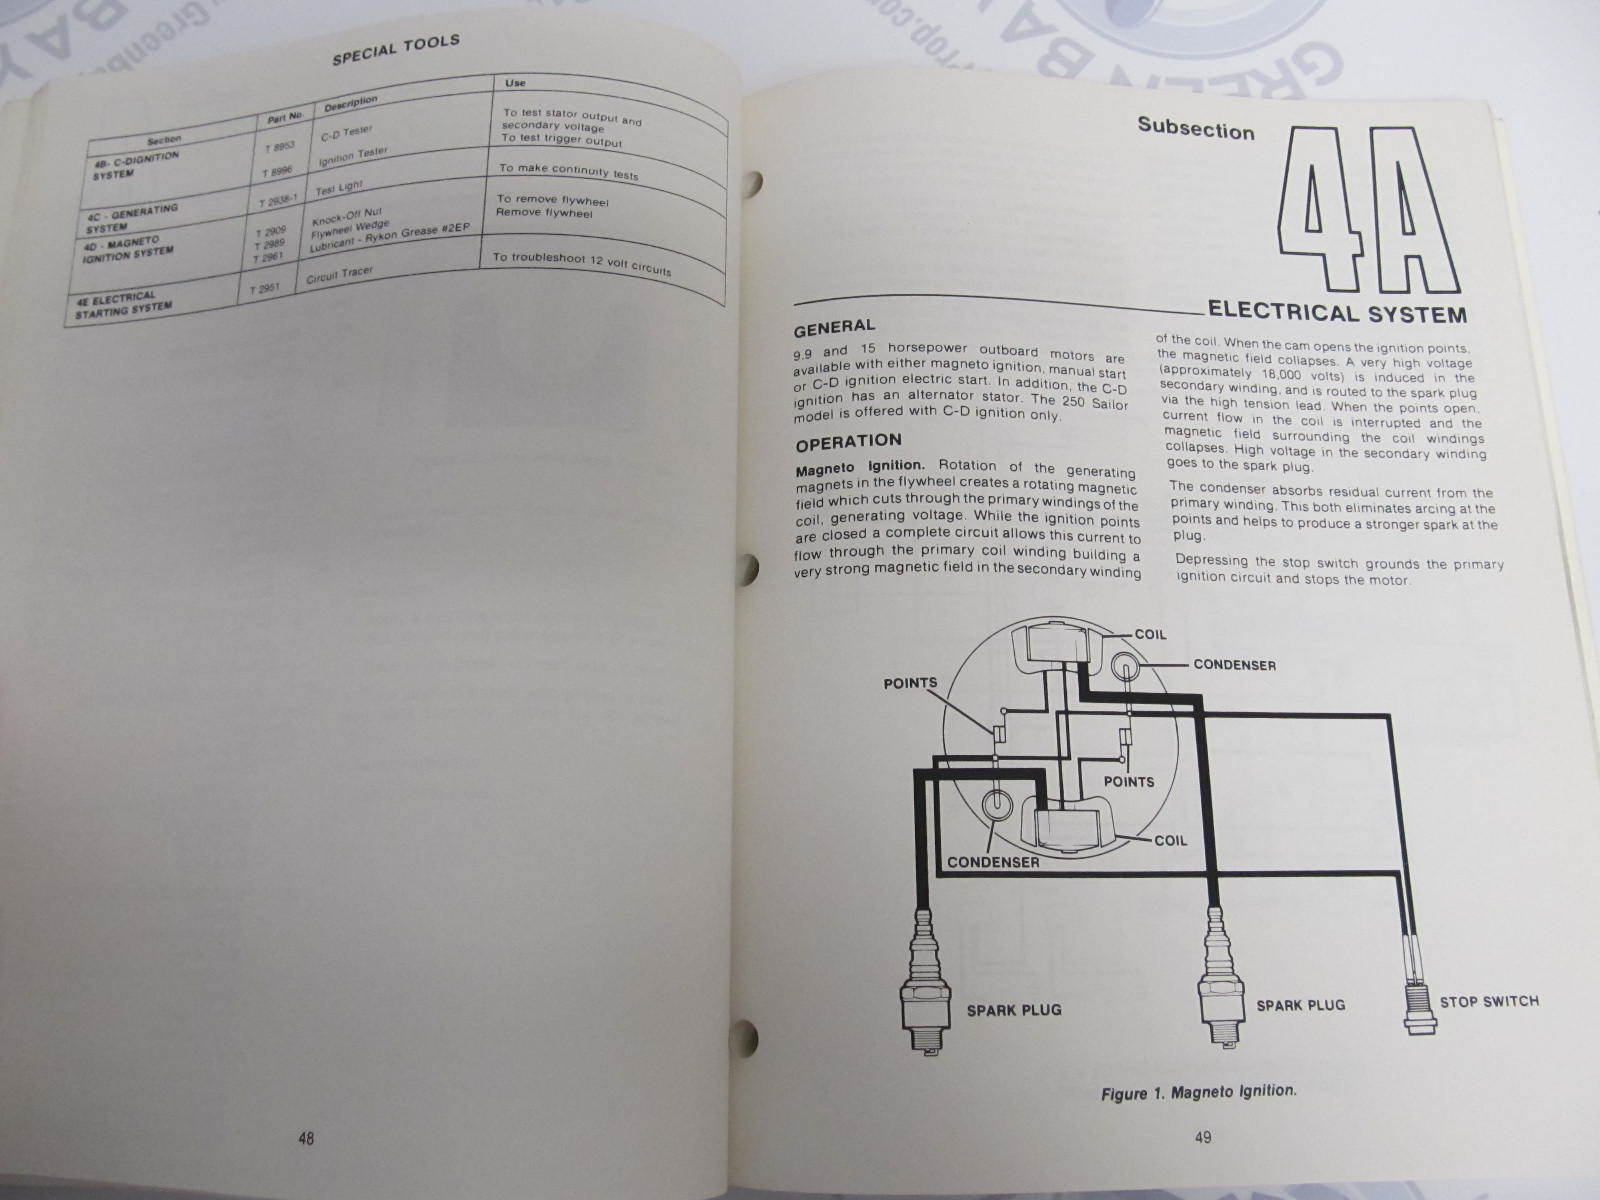 ... OB3869 Mercury Force Chrysler Outboard Service Manual 9.9/15 HP 250  Sailor